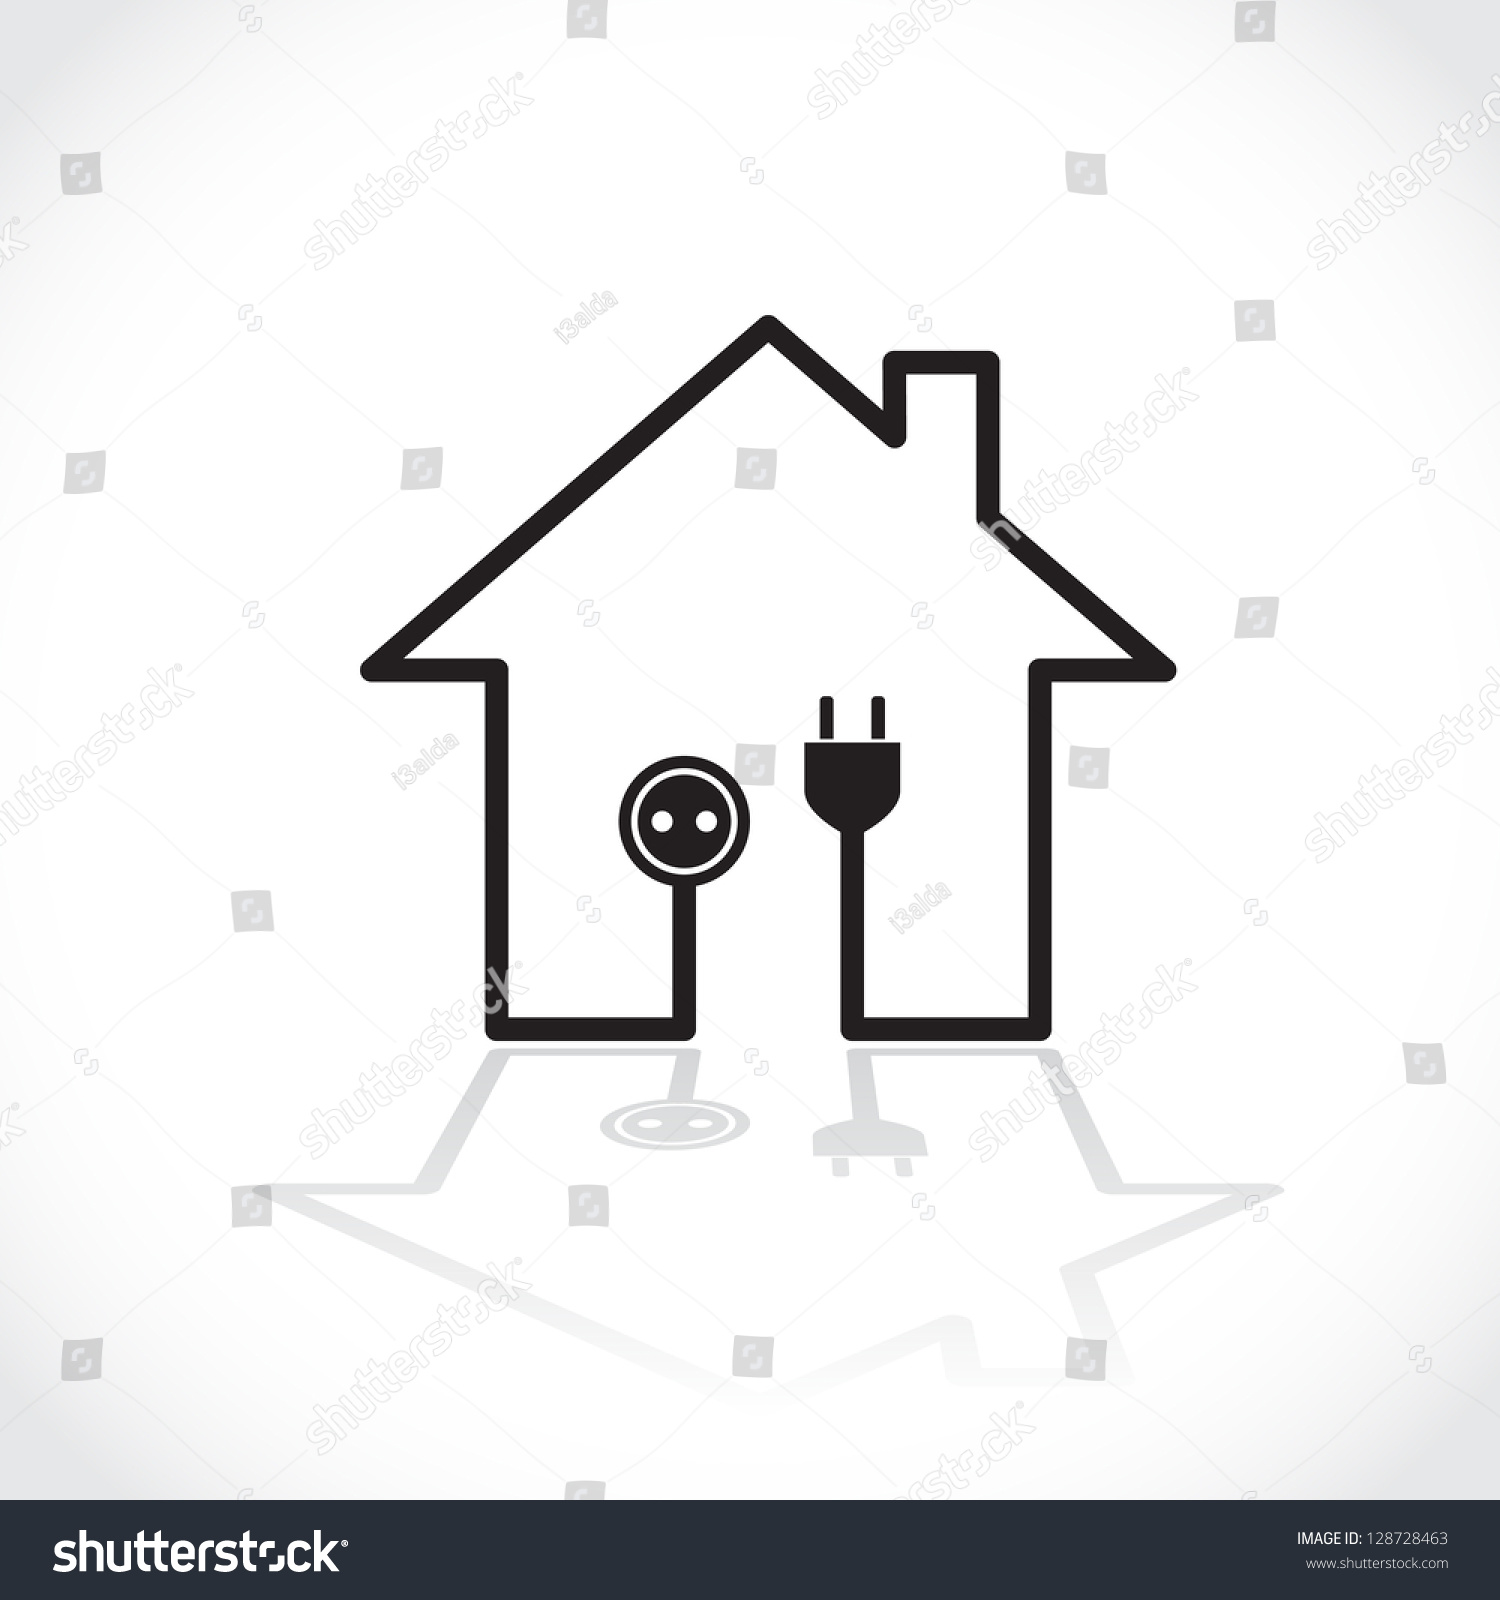 House Symbol Simple Electricity Circuit Illustration Stock Vector Electric Diagram Basic Symbols As